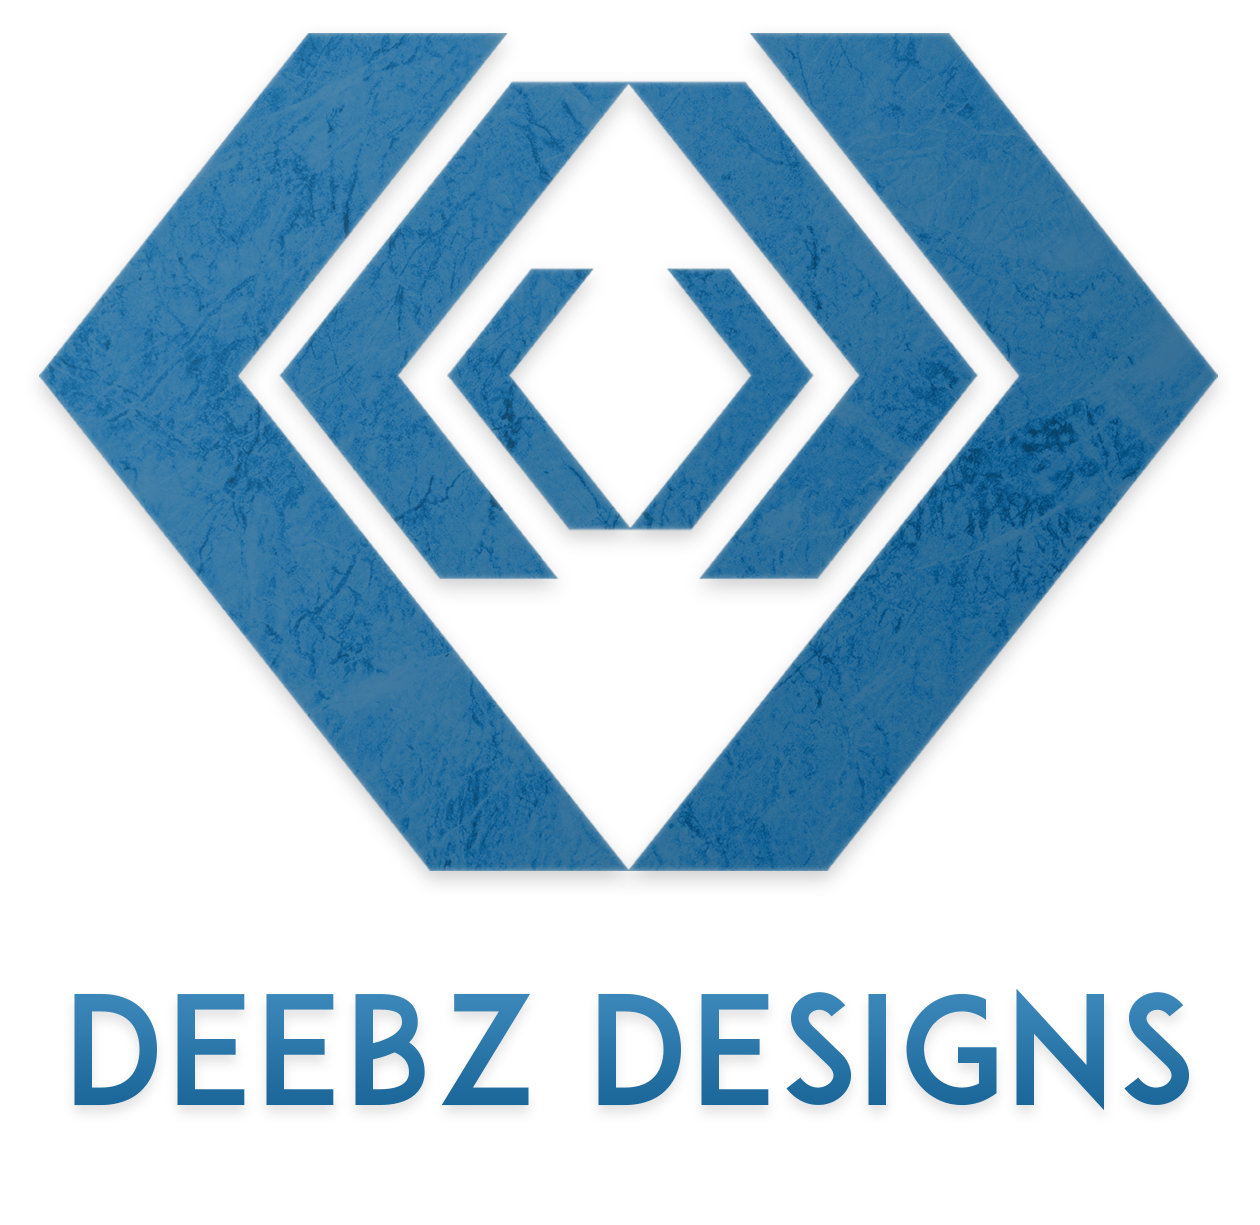 About - A freelance graphic designer who's been practising graphic design for over 7 years.